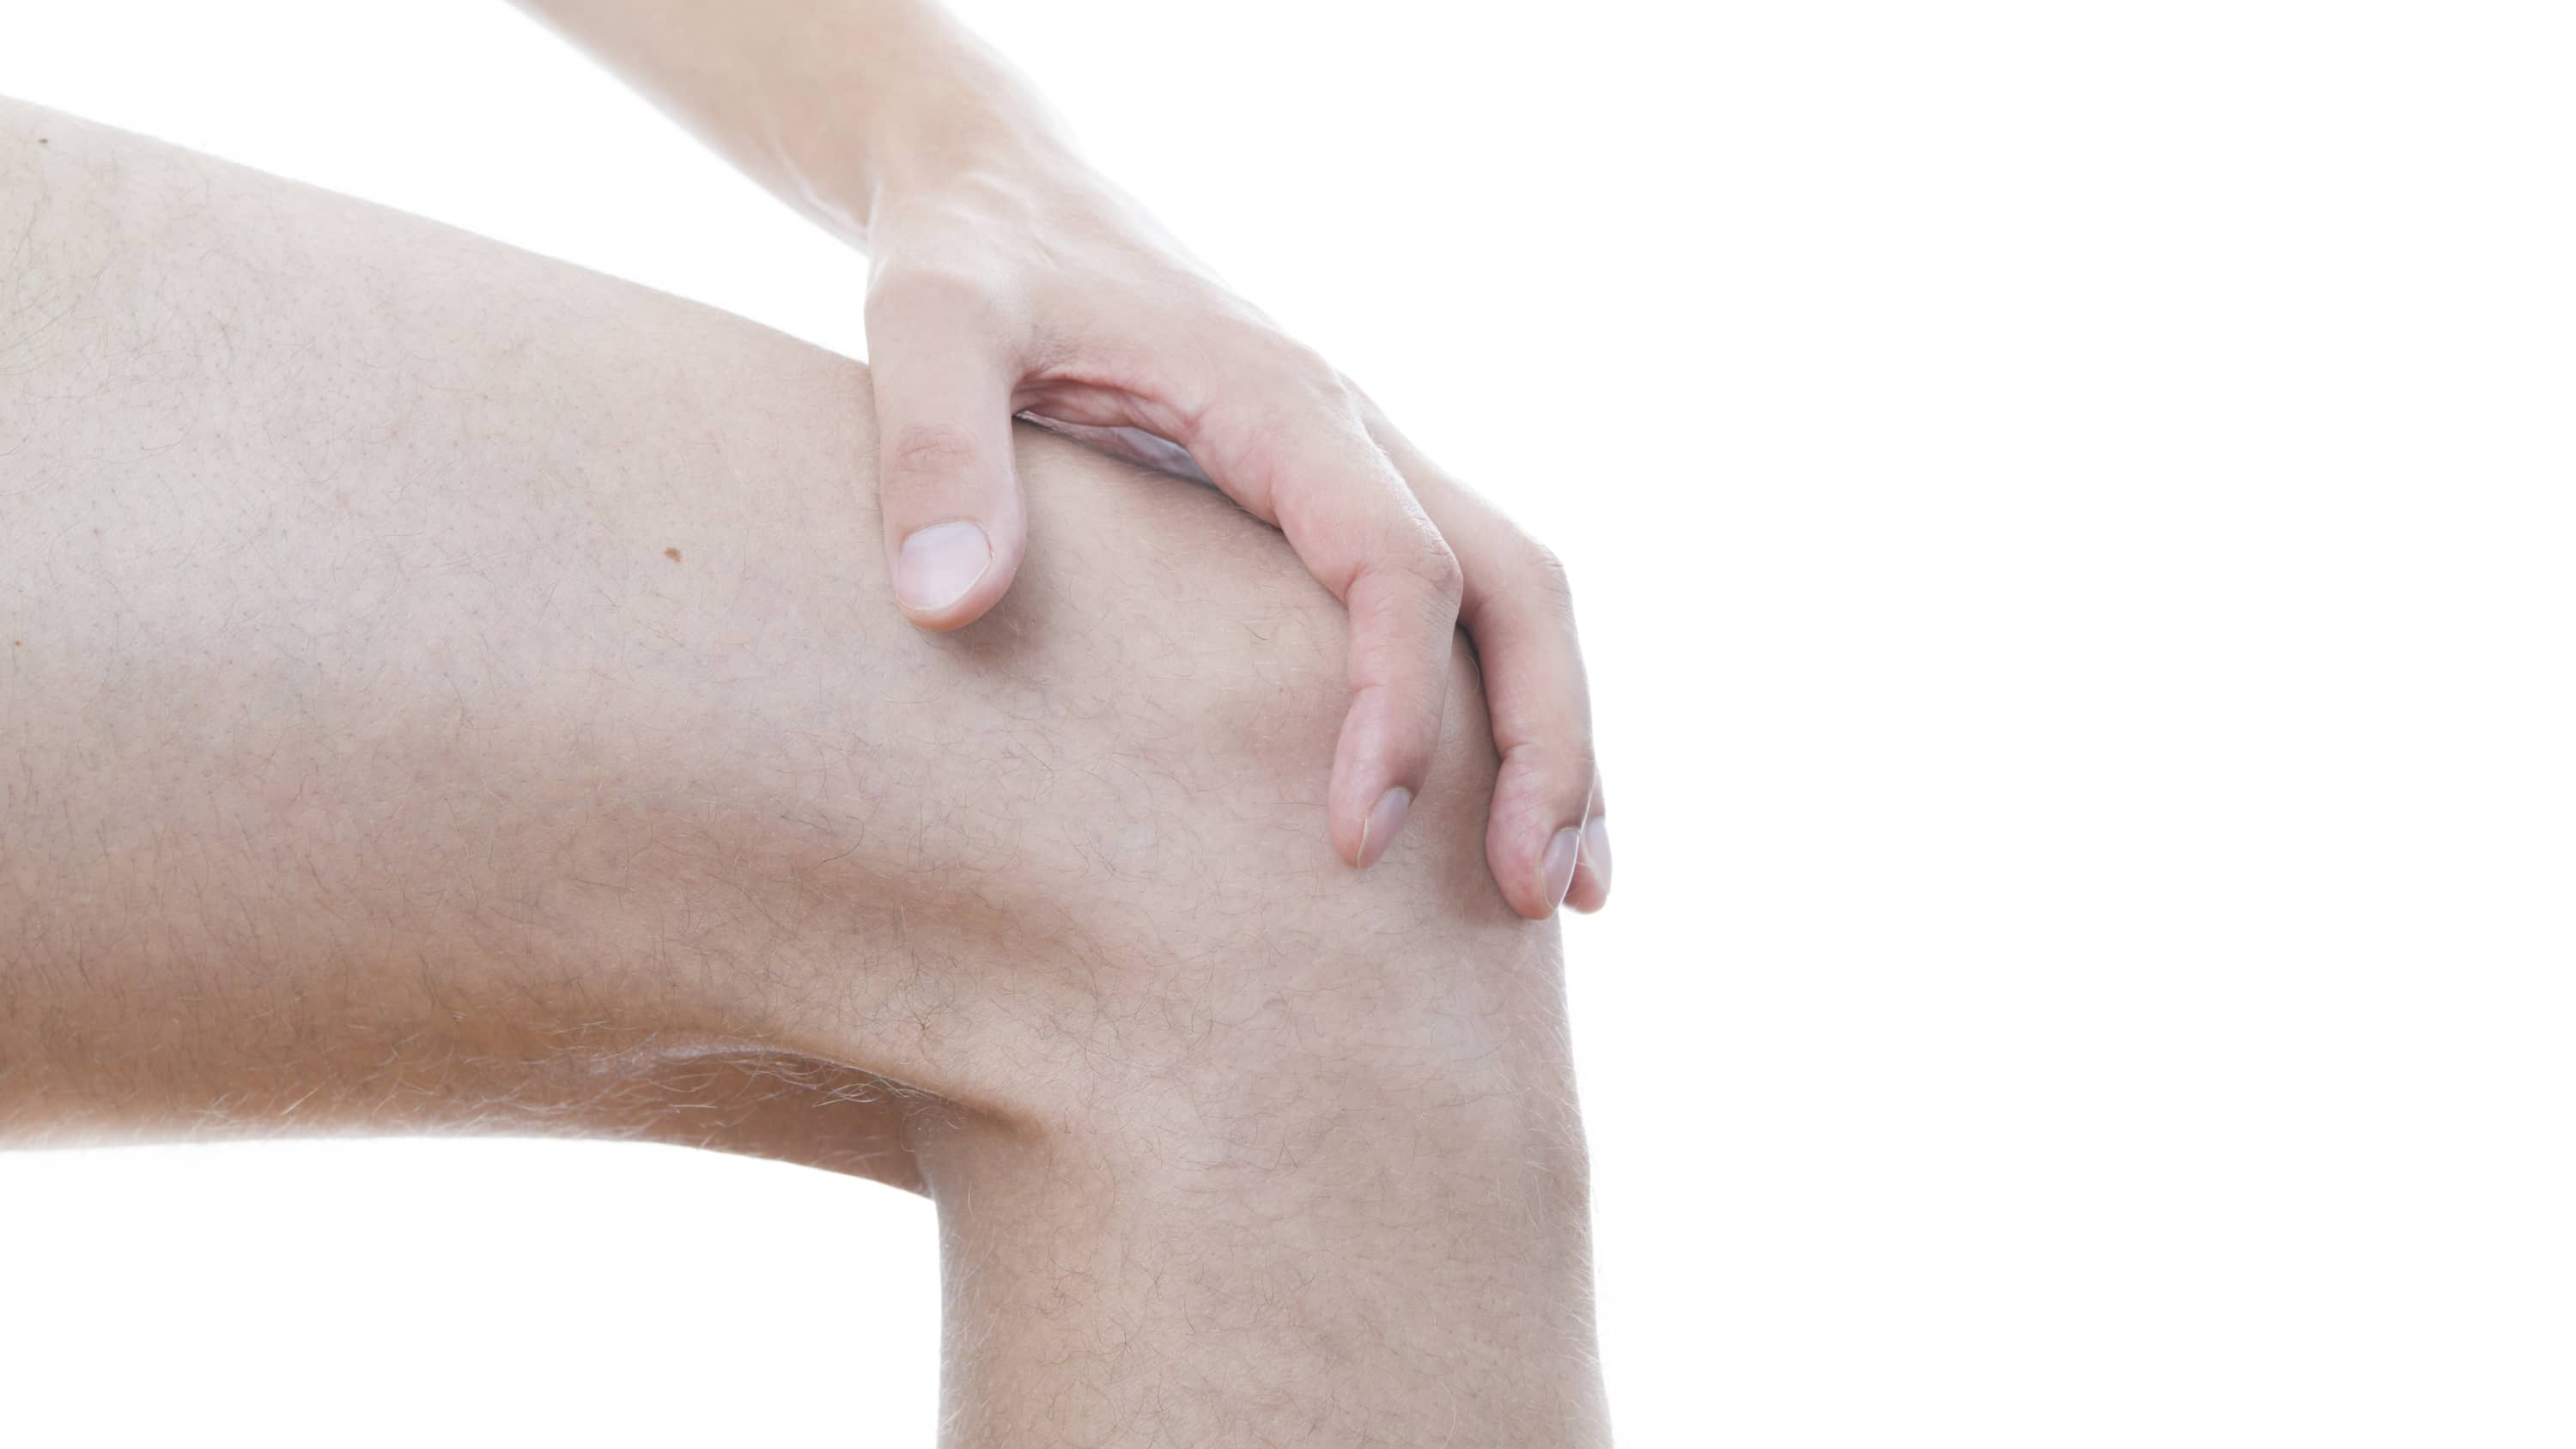 A hand itches the top of a bare knee, possibly because of eczema